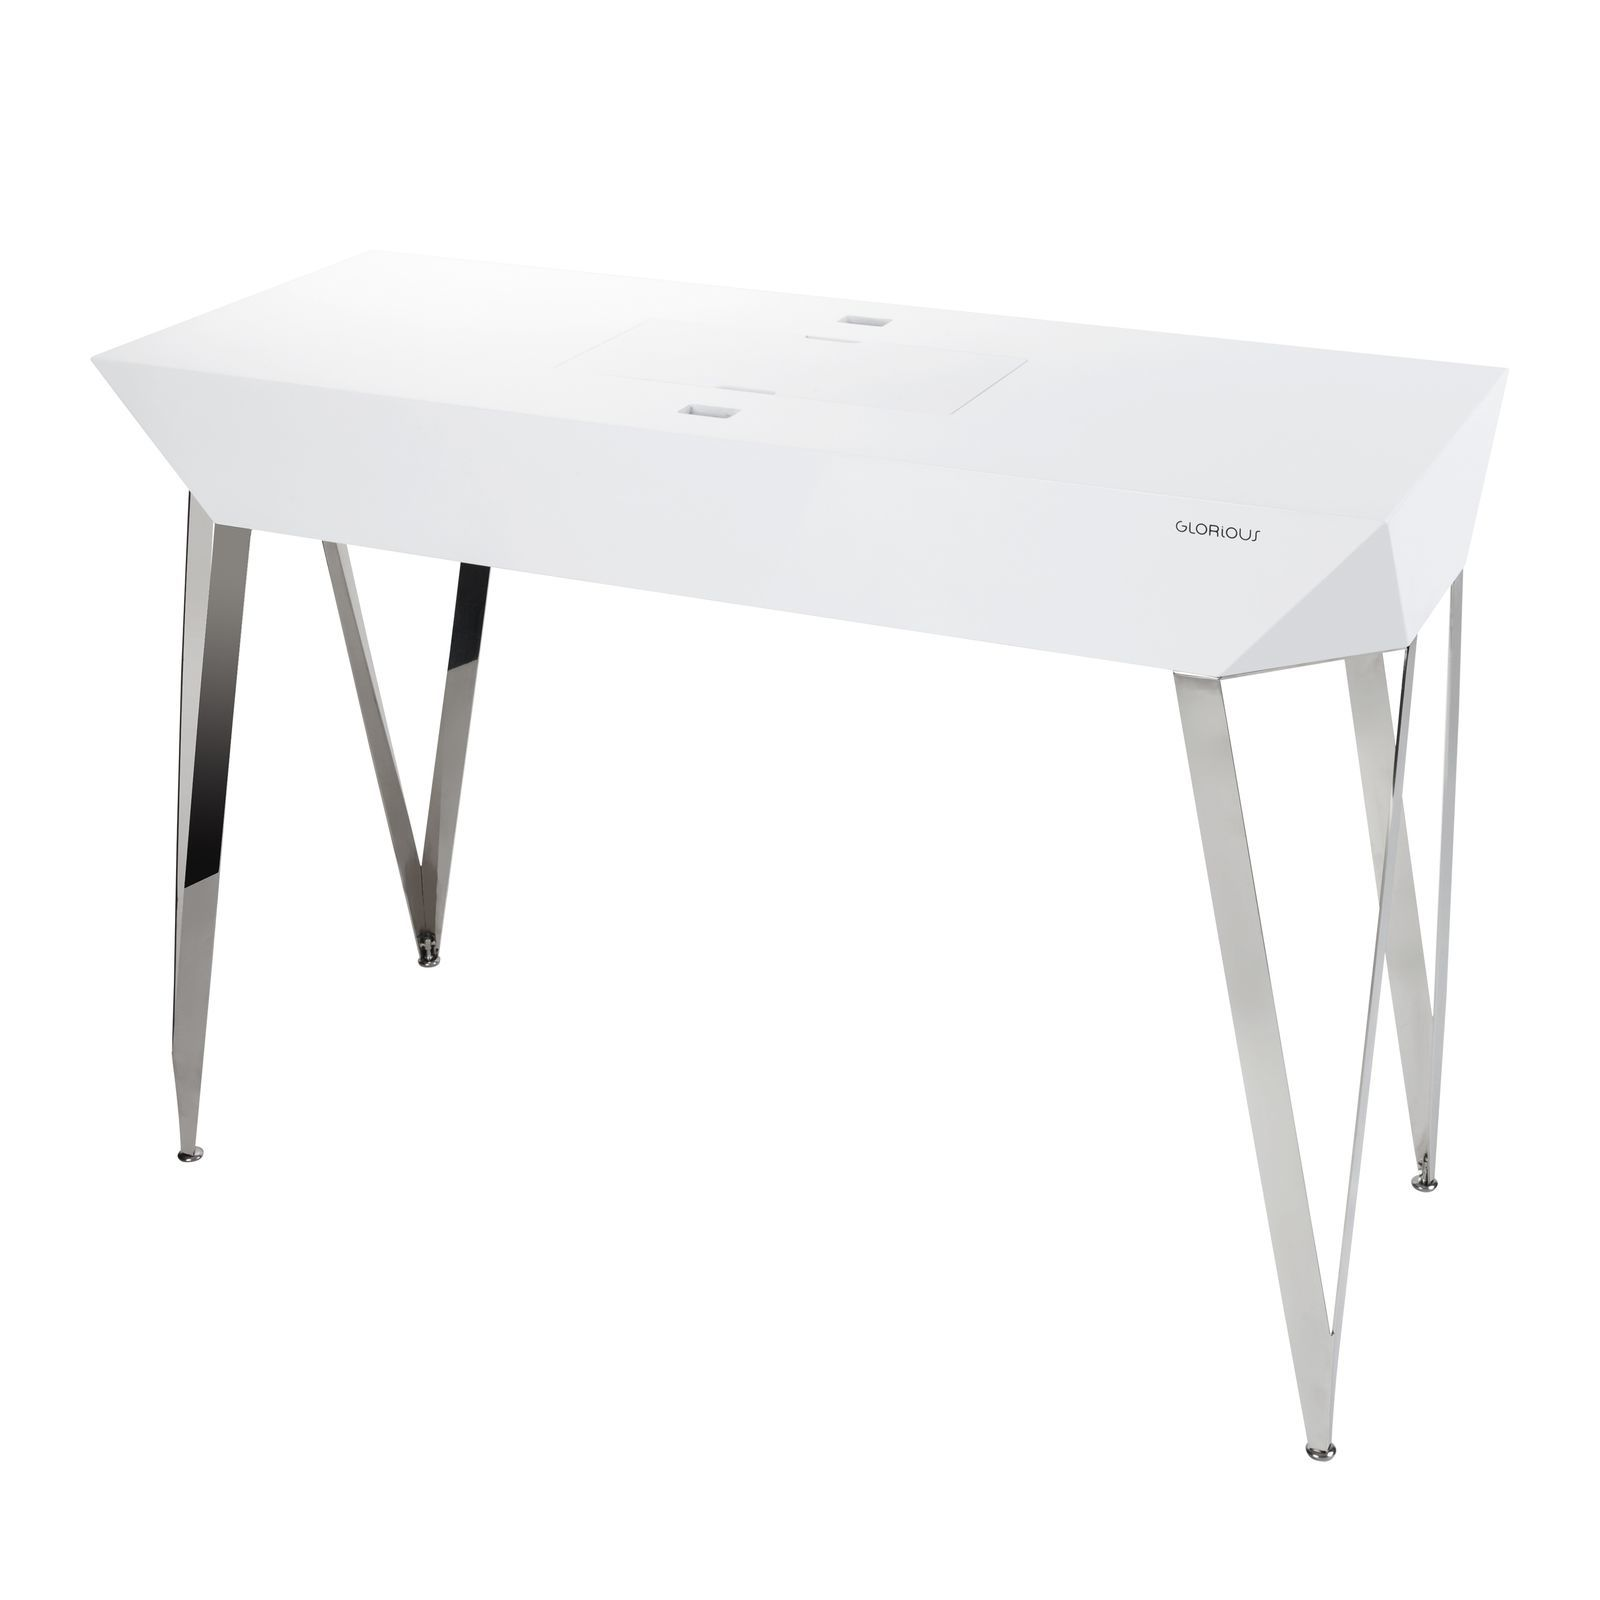 Glorious Glorious Diamond White DJ-Table 125 x 90 x 48 cm Immagine prodotto